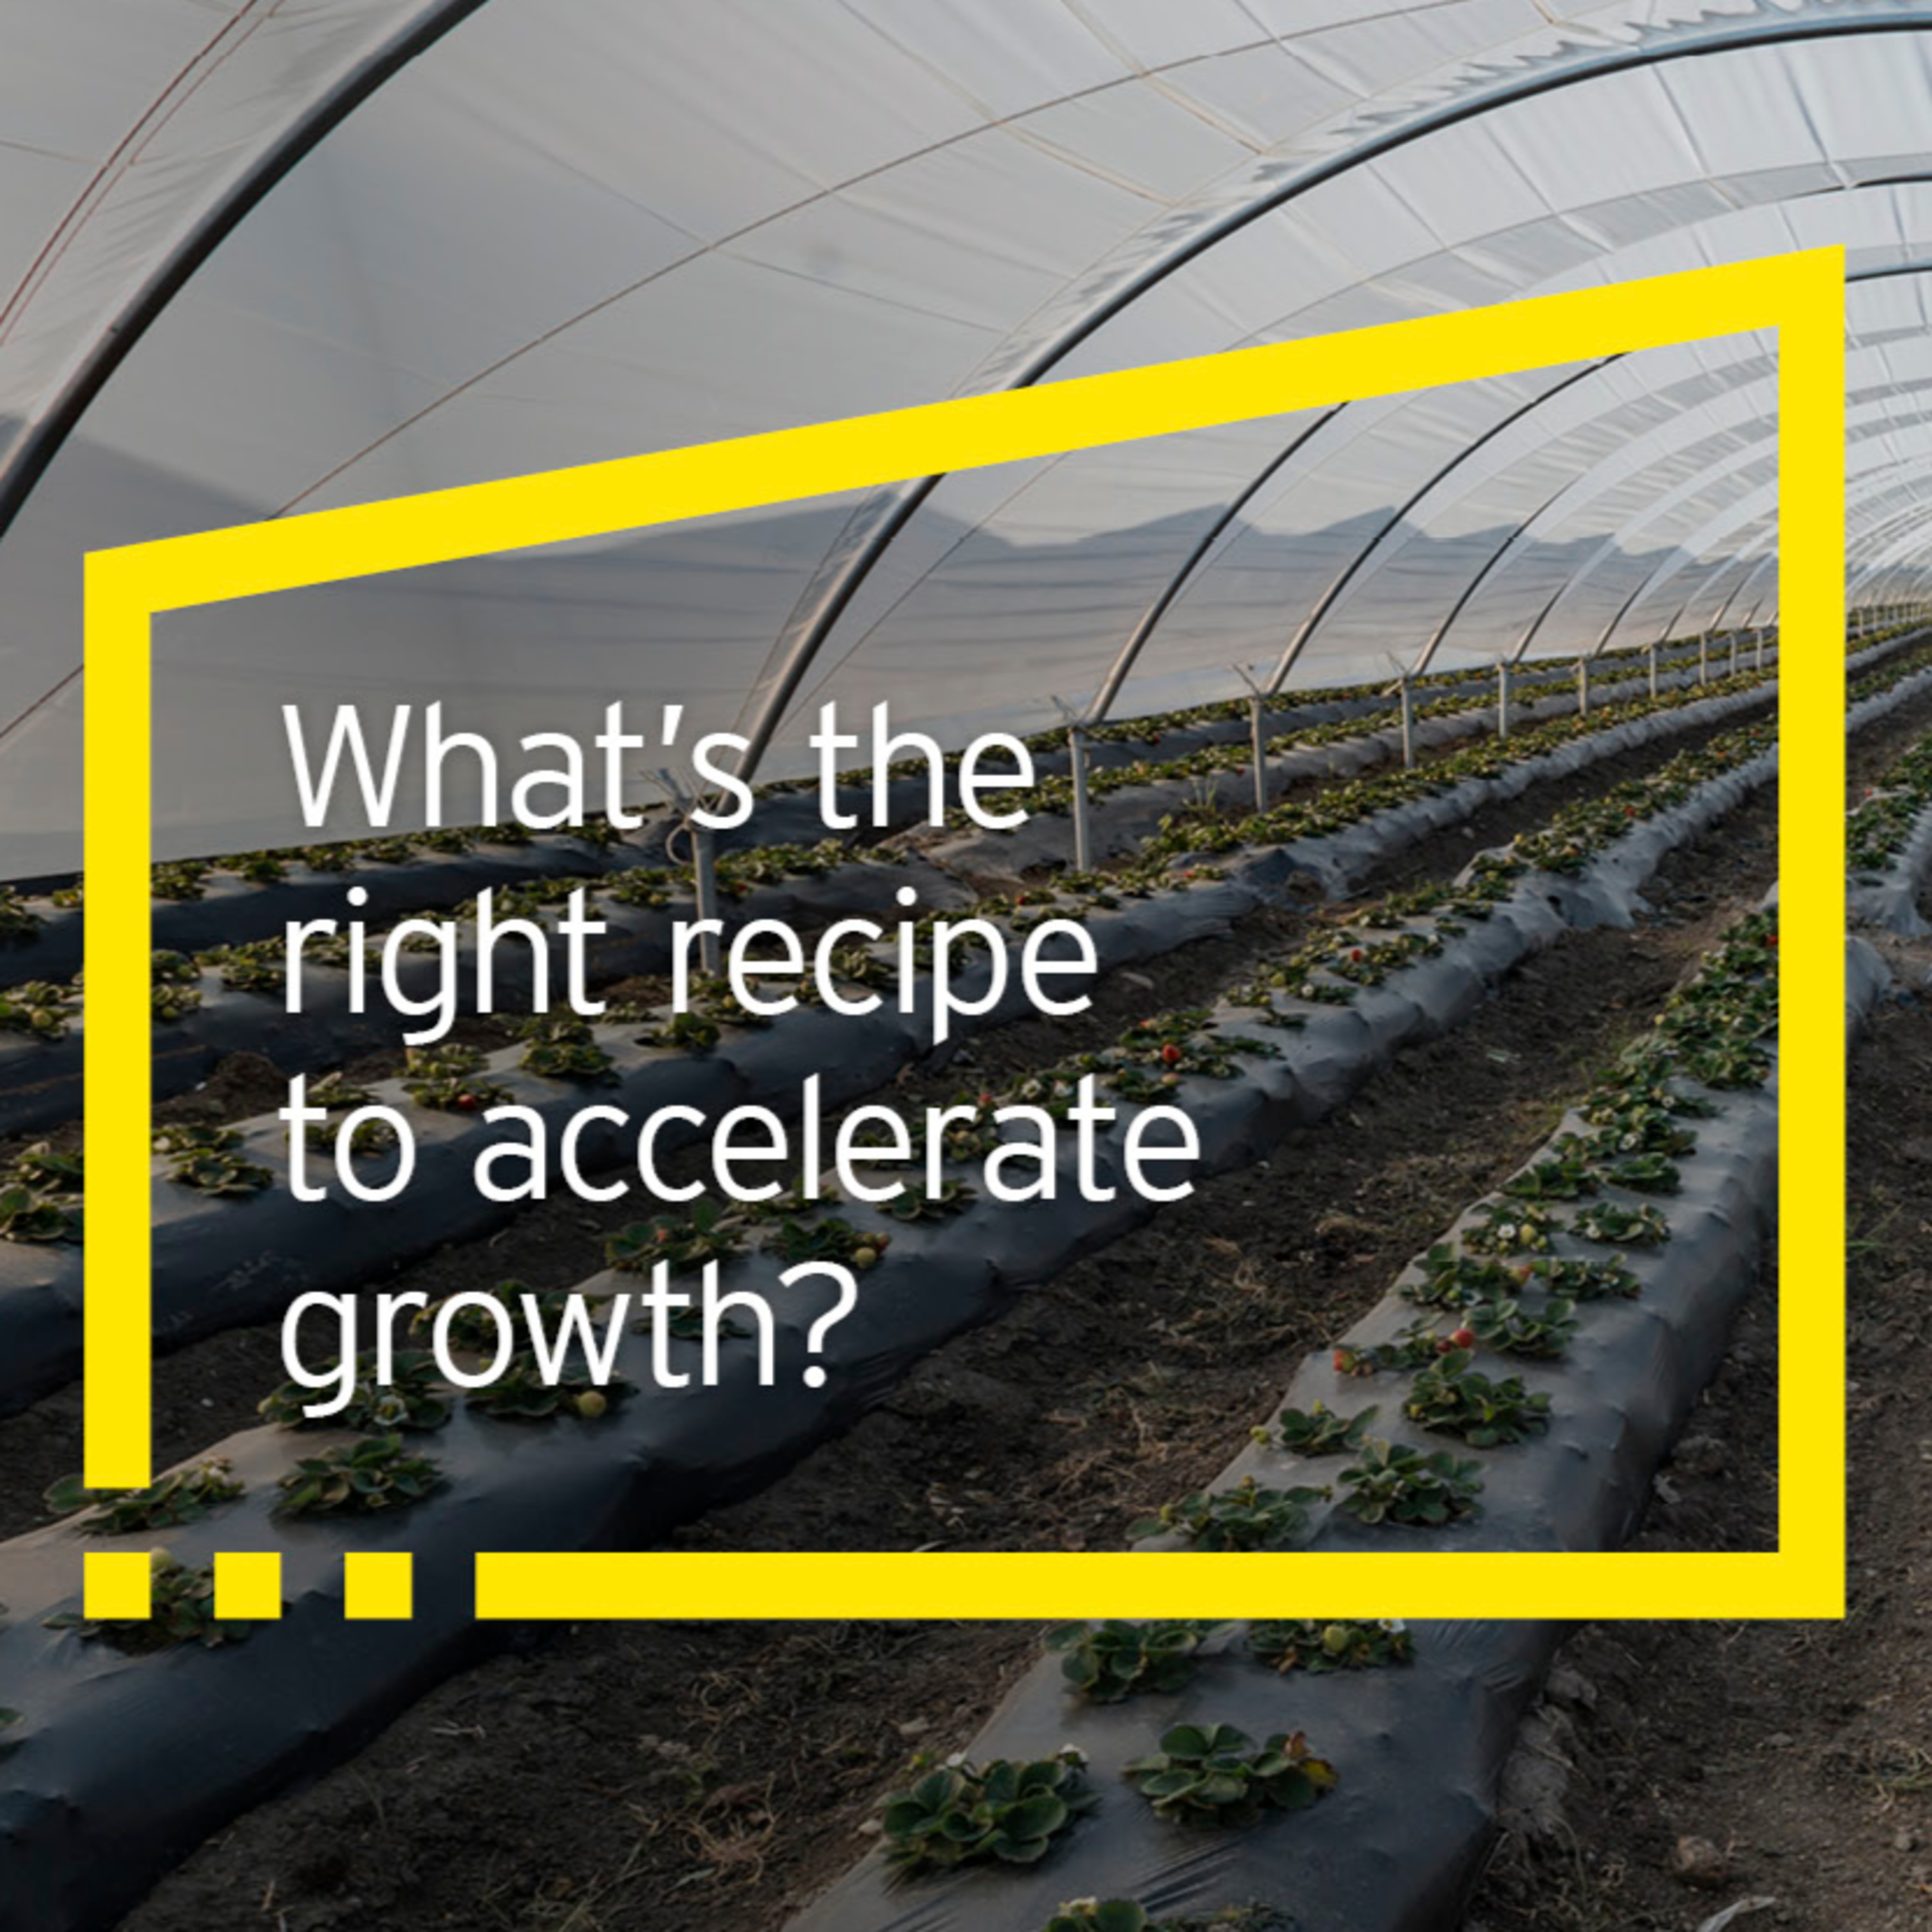 What is the right recipe to accelerate growth?